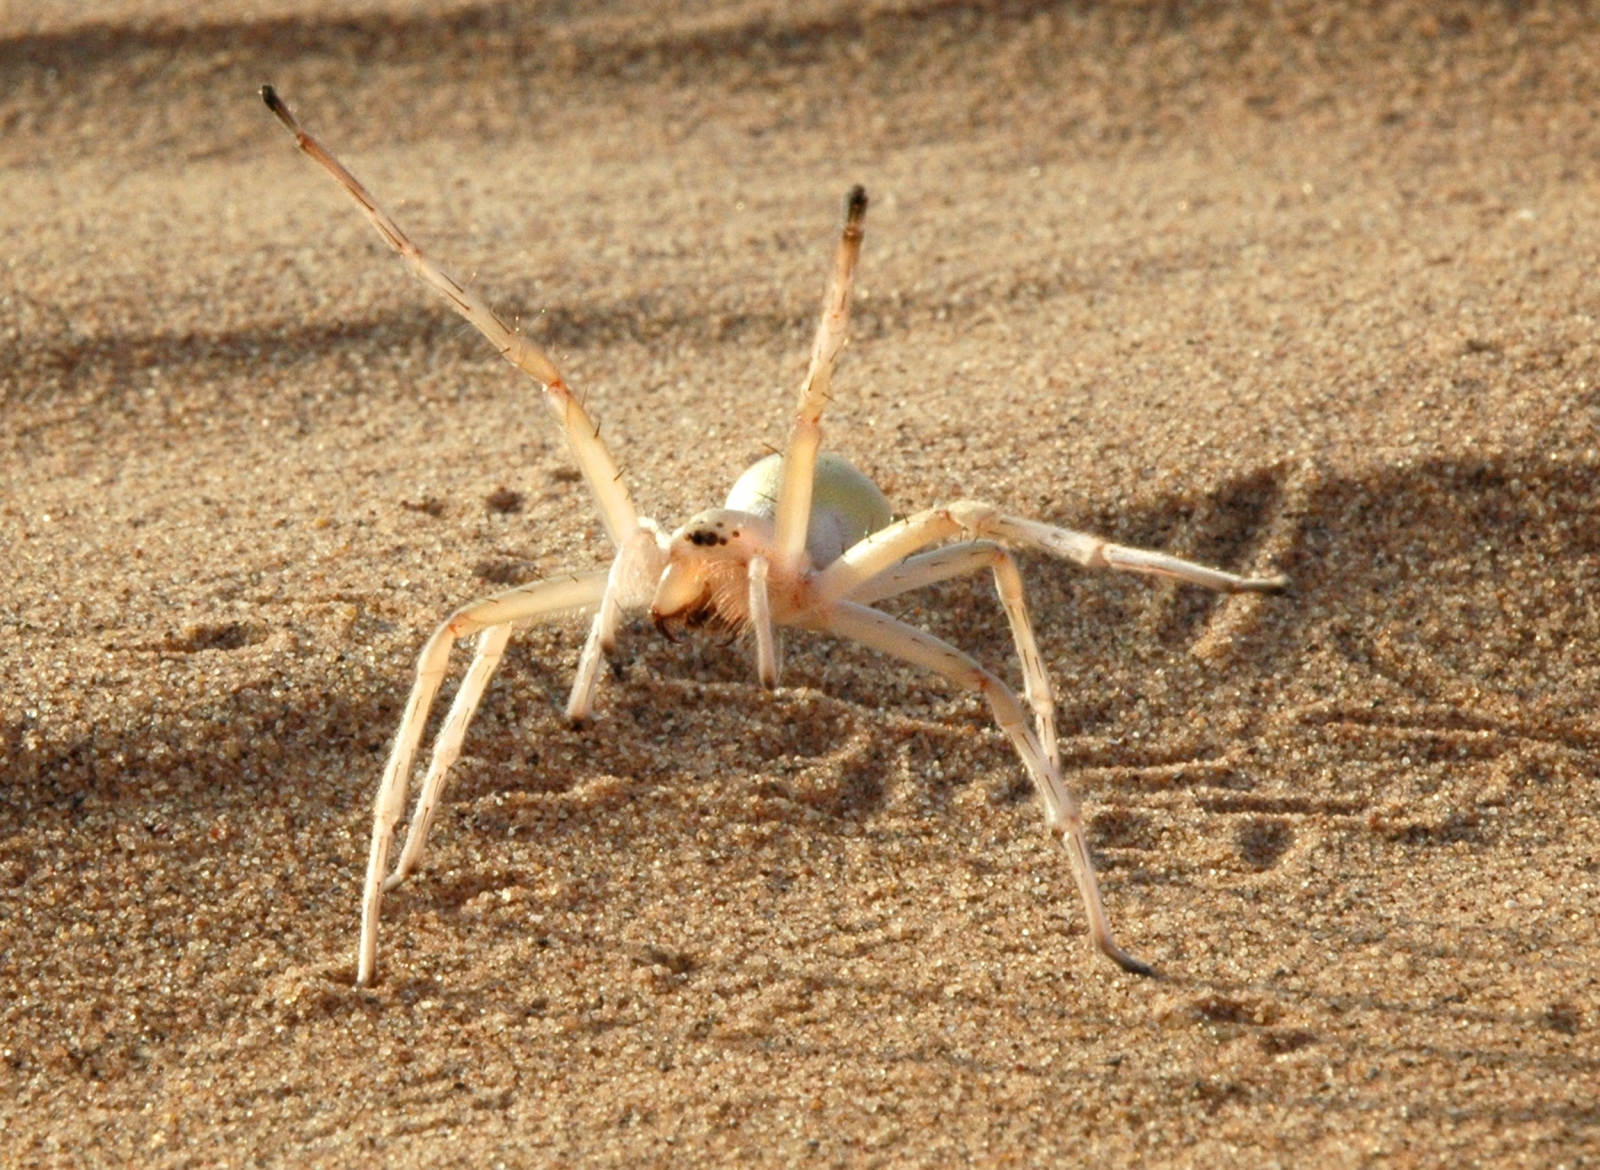 Cartwheeling spider